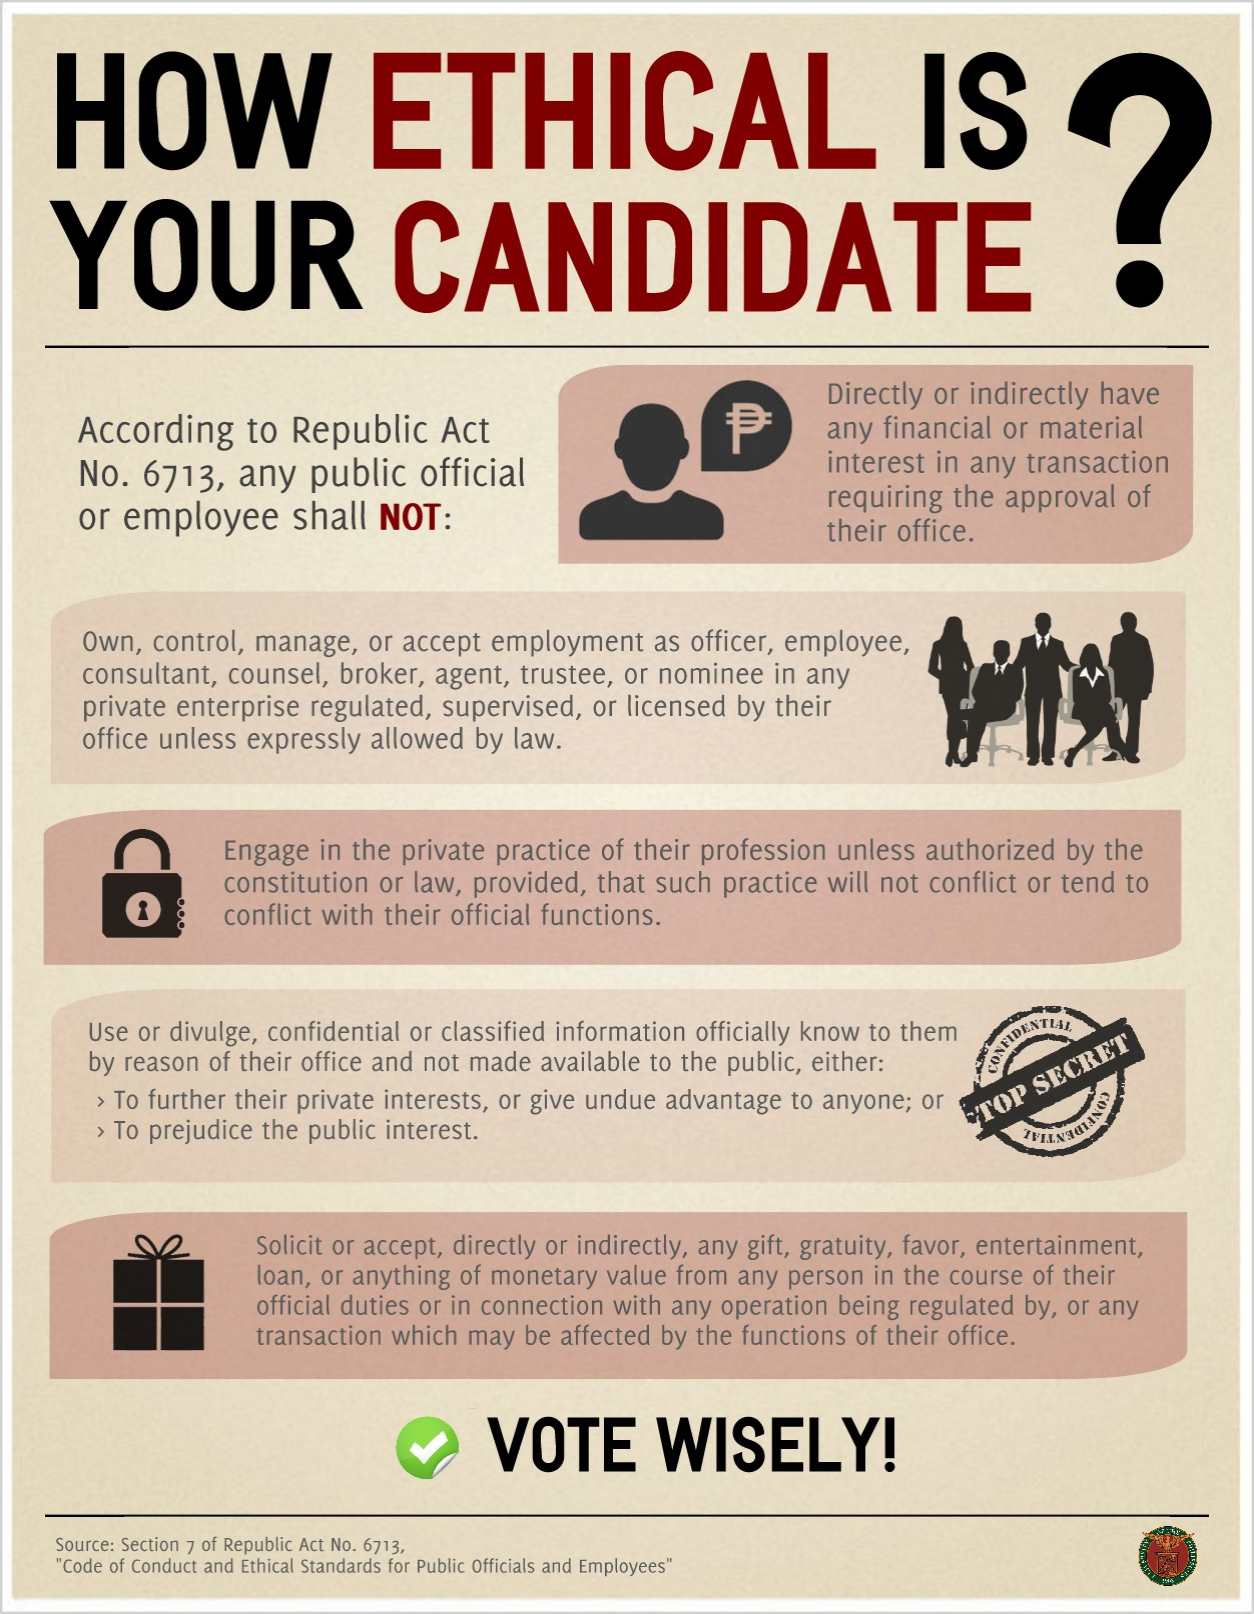 How ethical is your candidate